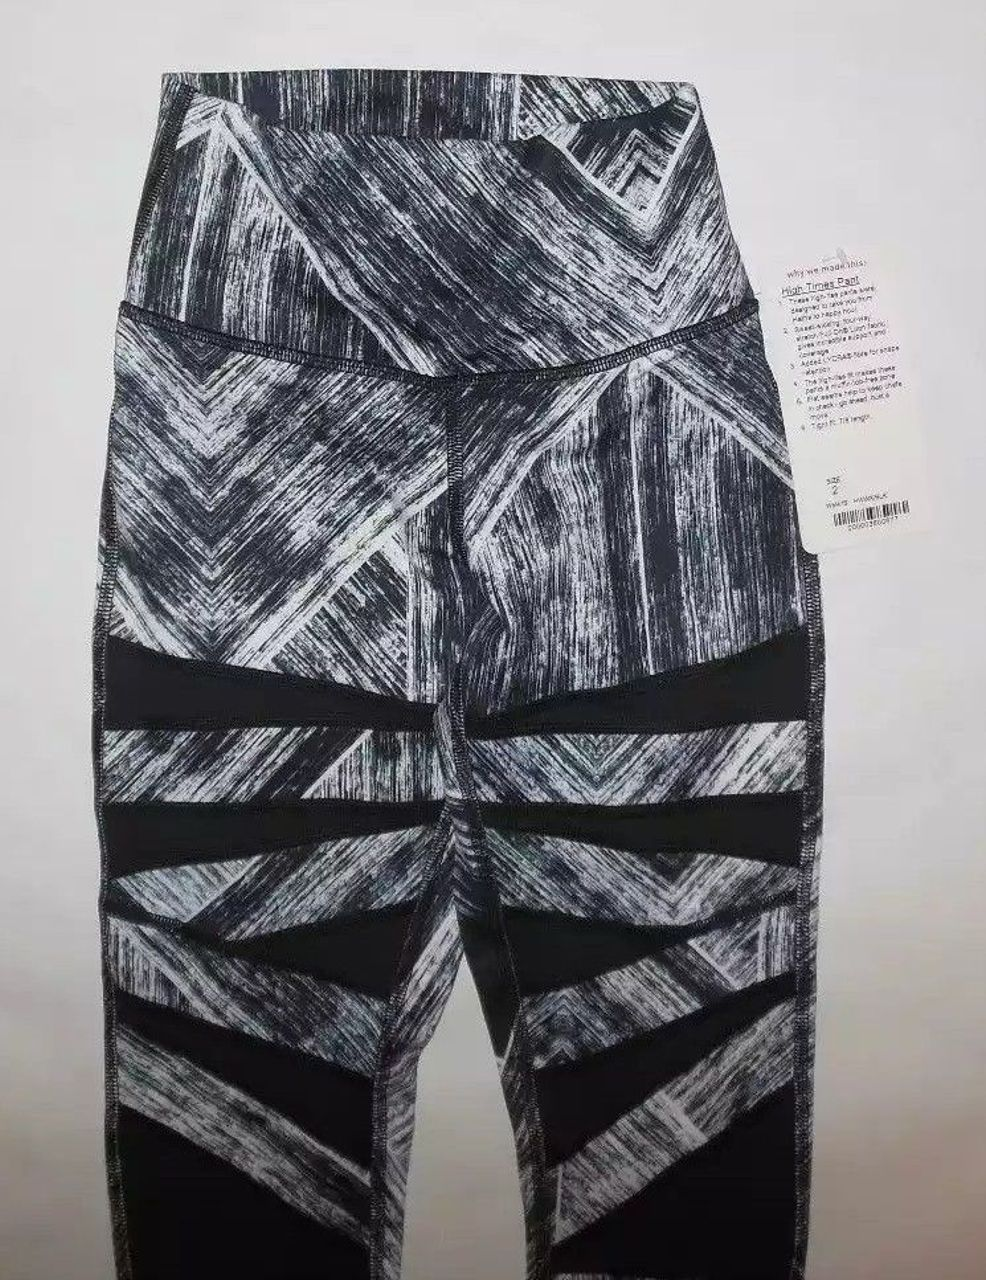 Lululemon High Times Pant - Heat Wave White Black / Black